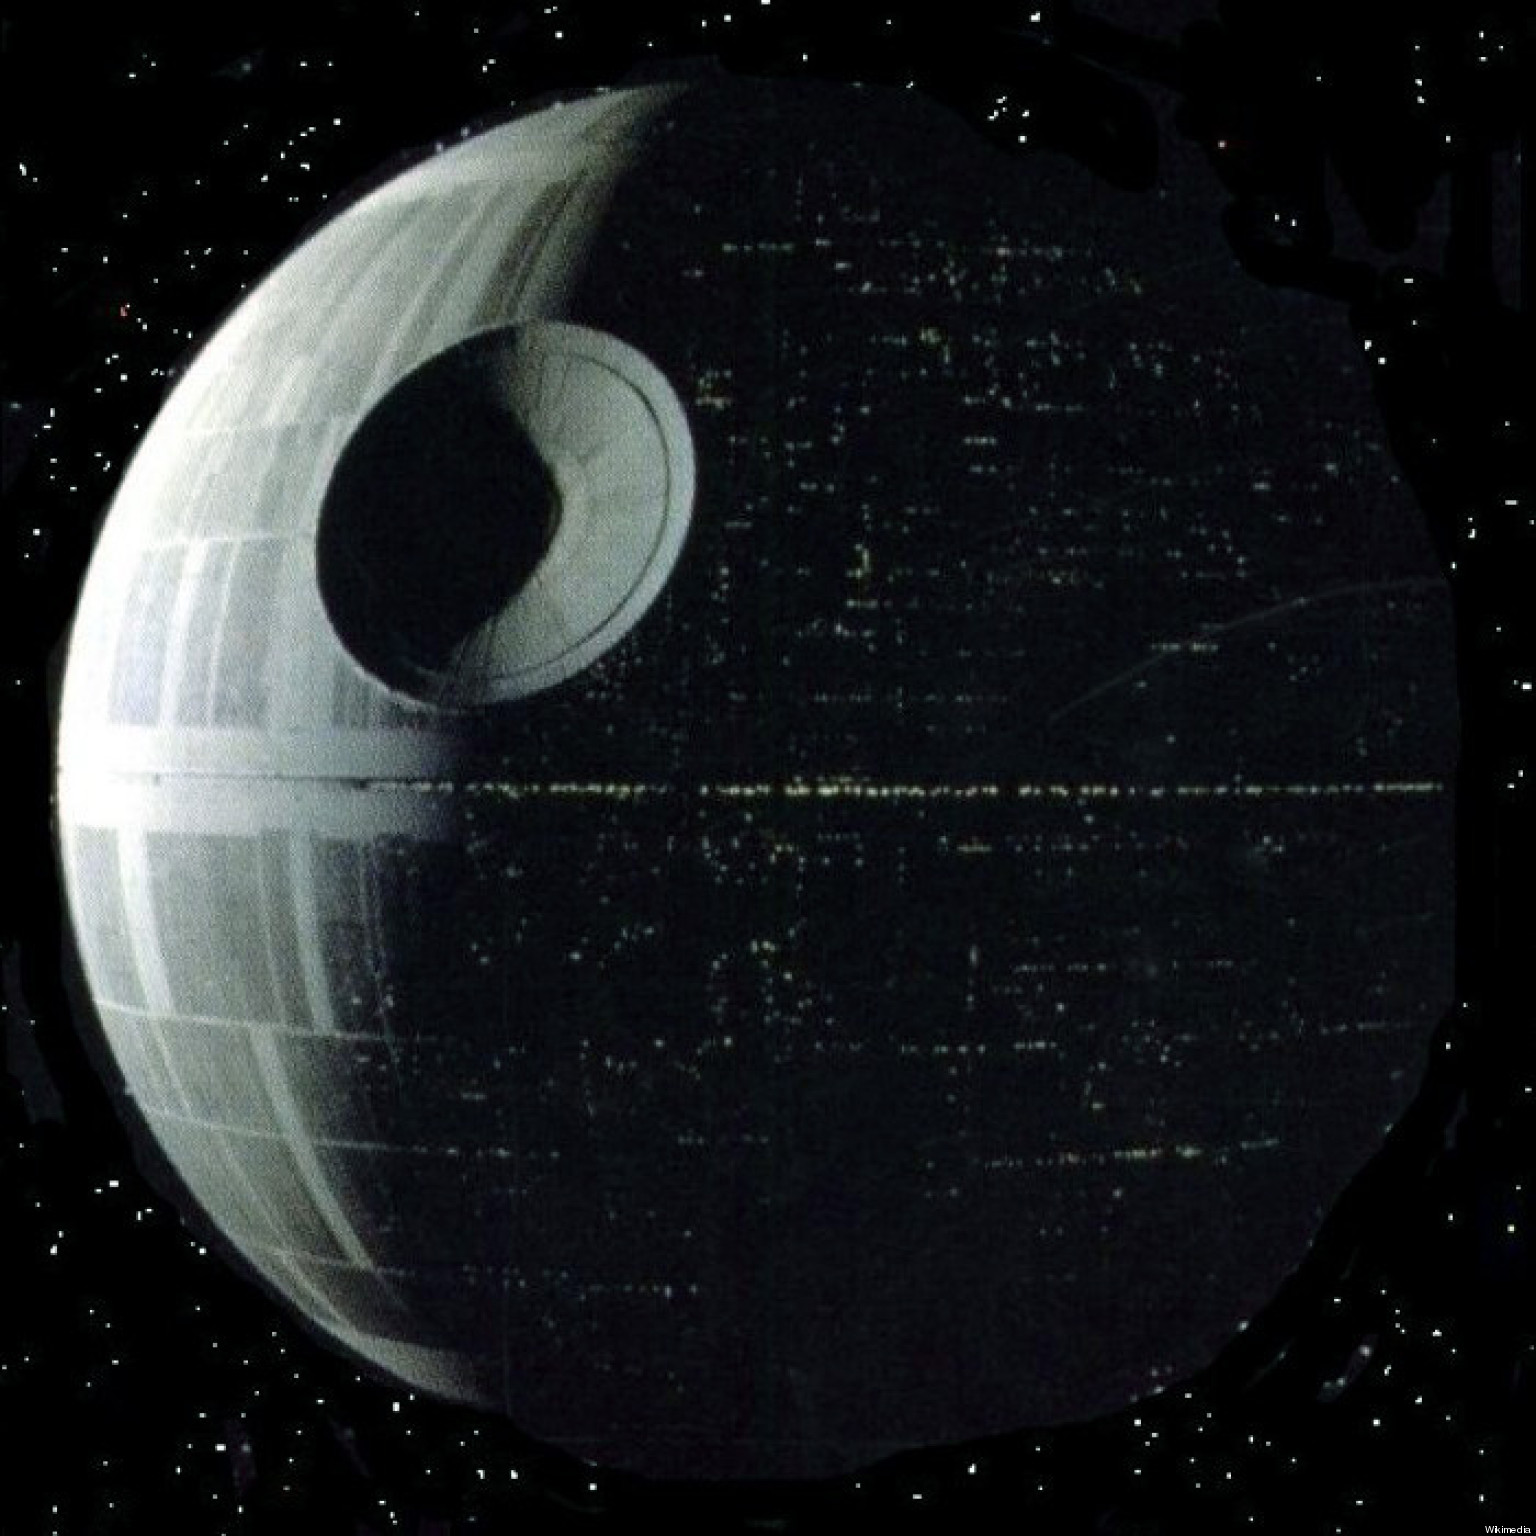 'Star Wars' Fan Site Responds To Obama Rejection Of Death Star